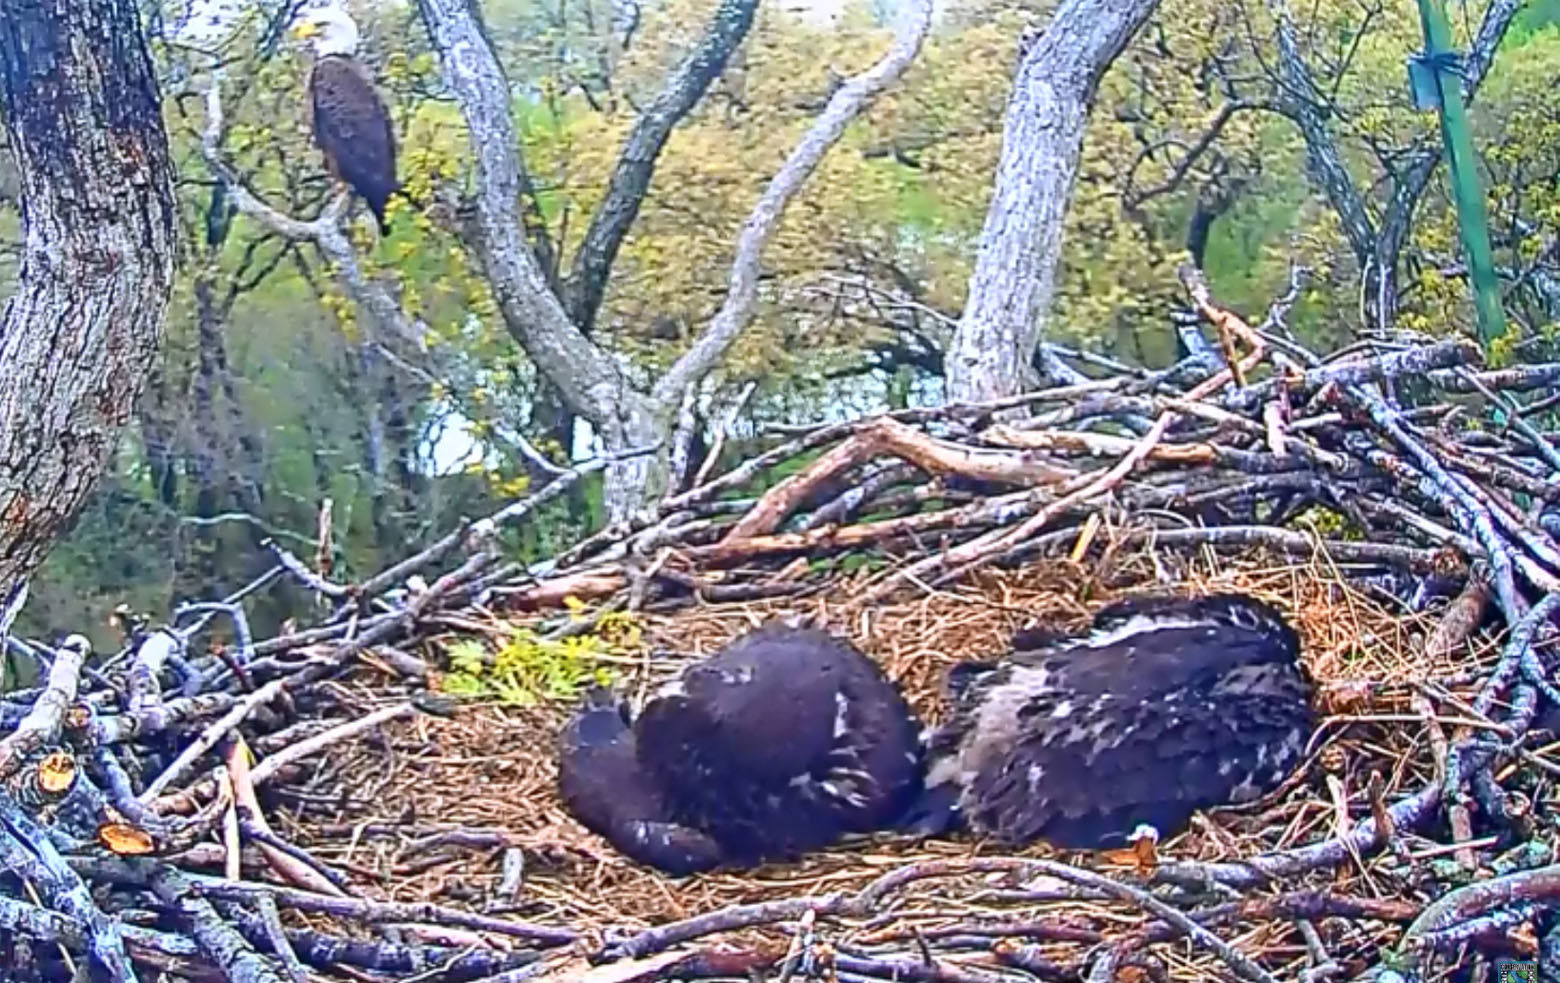 Honor and Courage napping April 27, 2018. (Courtesy Earth Conservation Corps)